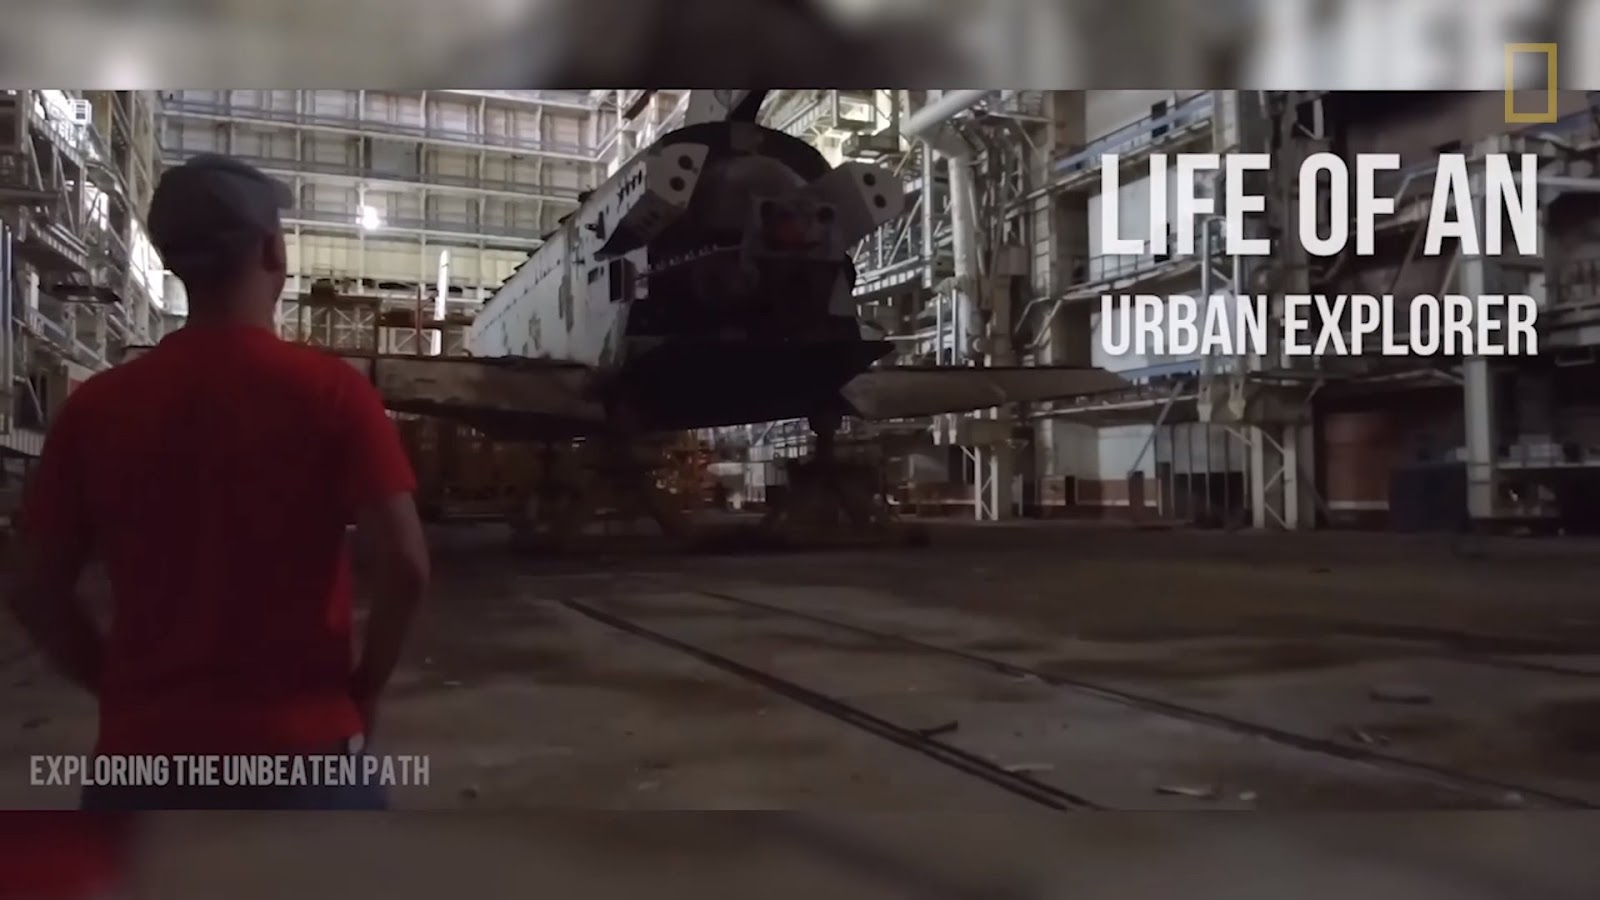 life of an urban explorer Bob Thissen